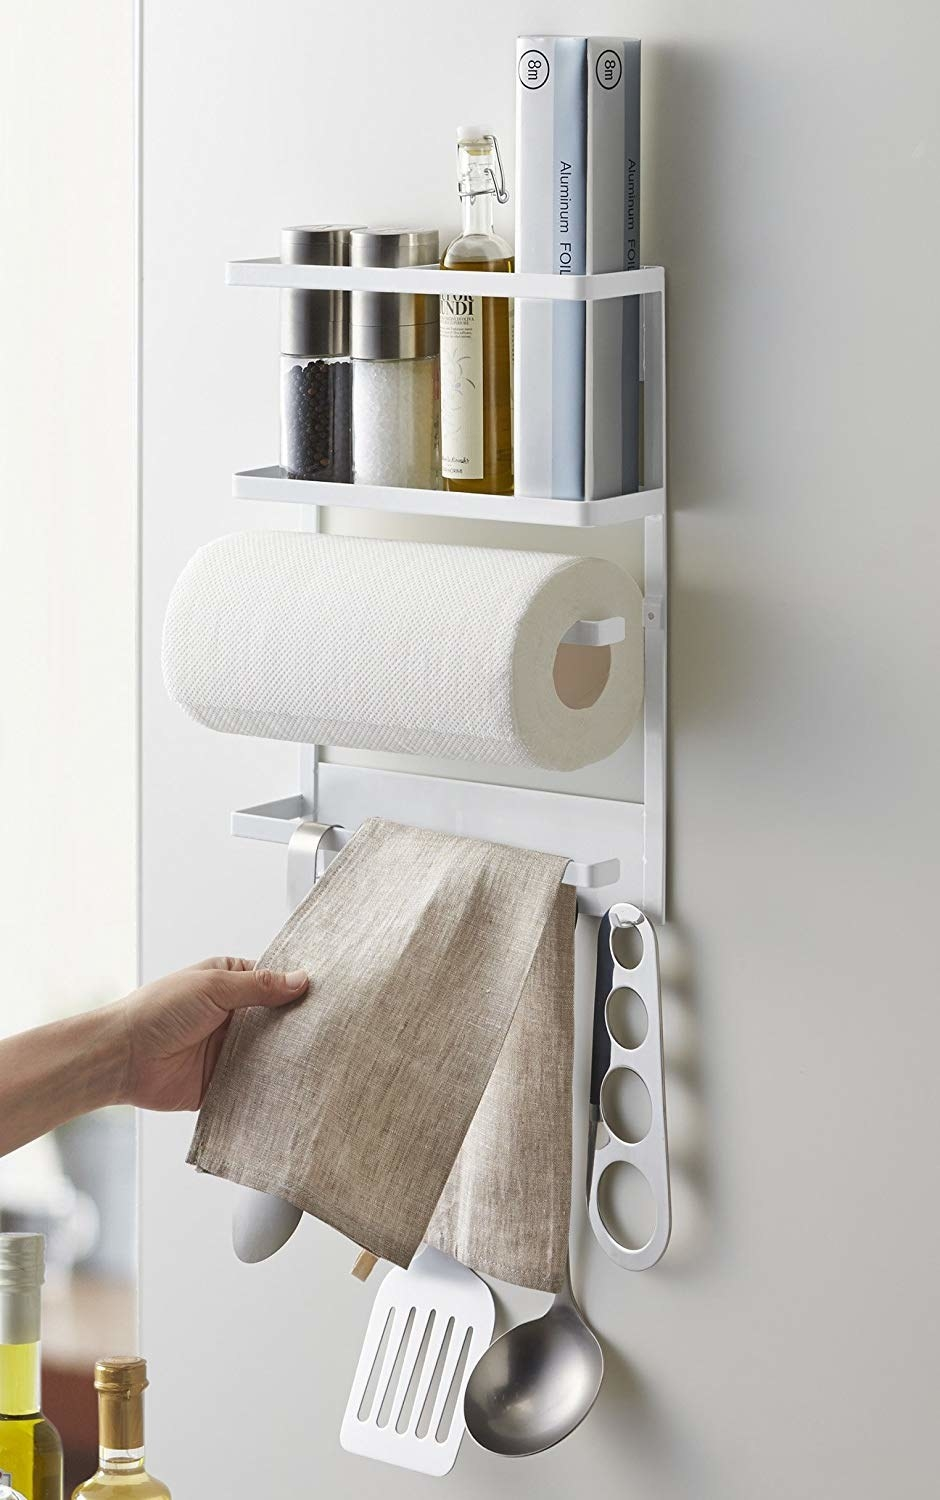 A metal-framed kitchen rack with a top shelf holding books, salt/pepper, and a bottle of oil; a paper towel holder; an arm holding a hand towel; and hooks at the bottom holding utensils like a spatula, ladle, etcetera